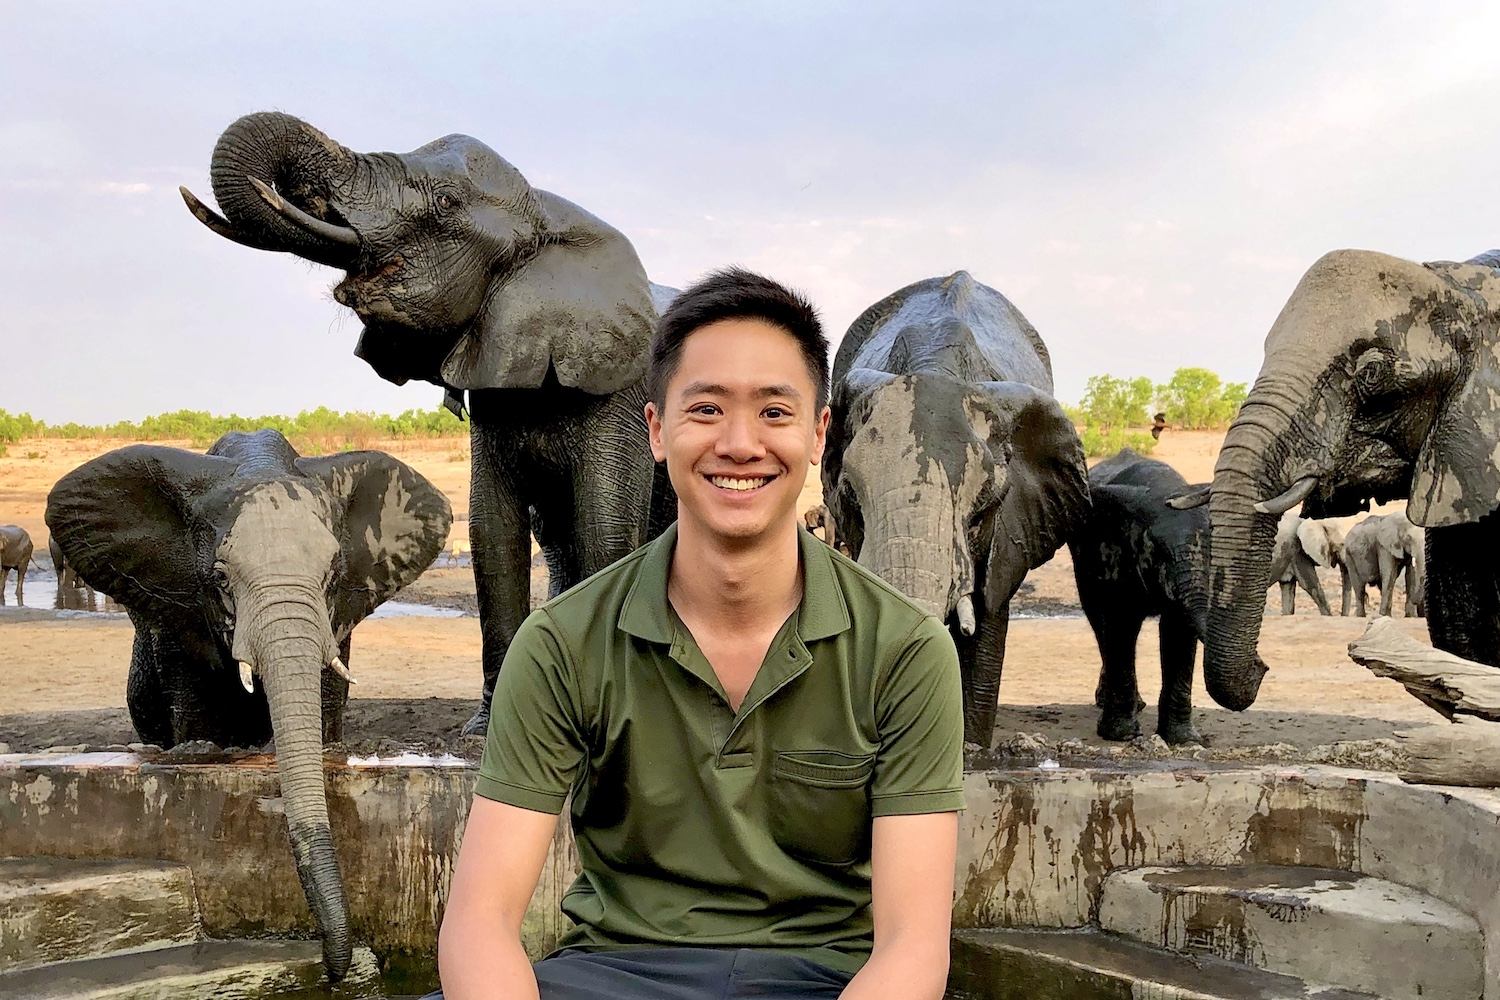 Matt with Elephants